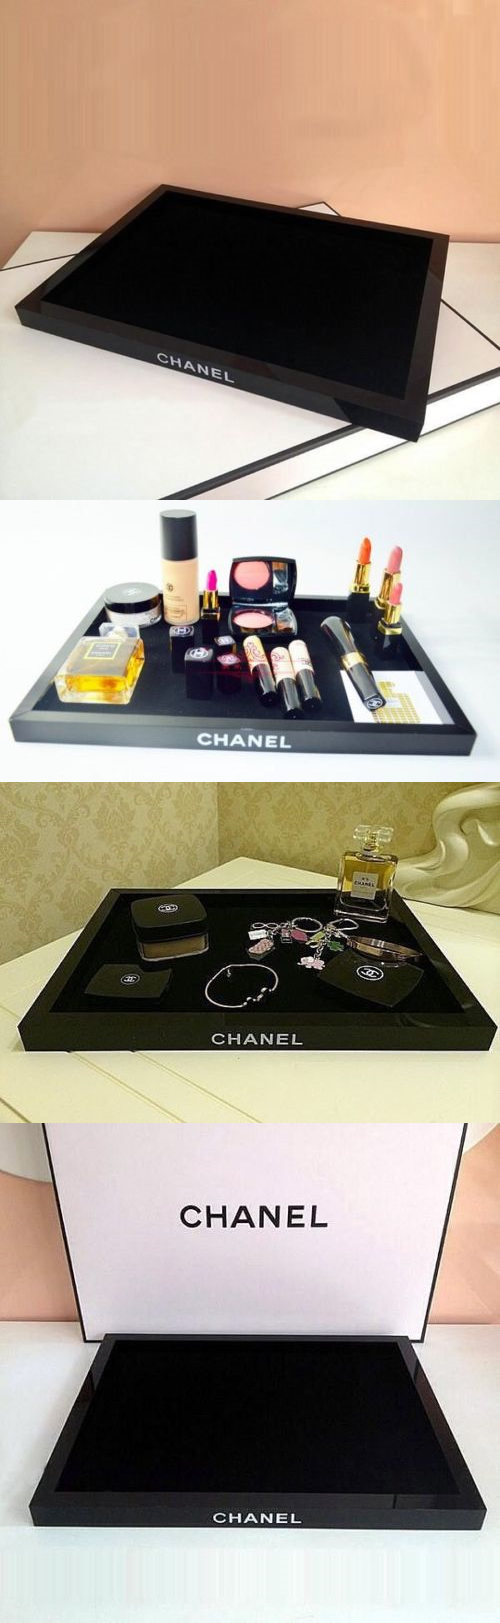 Other Makeup Tools and Accs: Chanel Perfume Holder Lip Stick Face Cosmetic Vanity Organizer Tray Vip Gift BUY IT NOW ONLY: $75.99